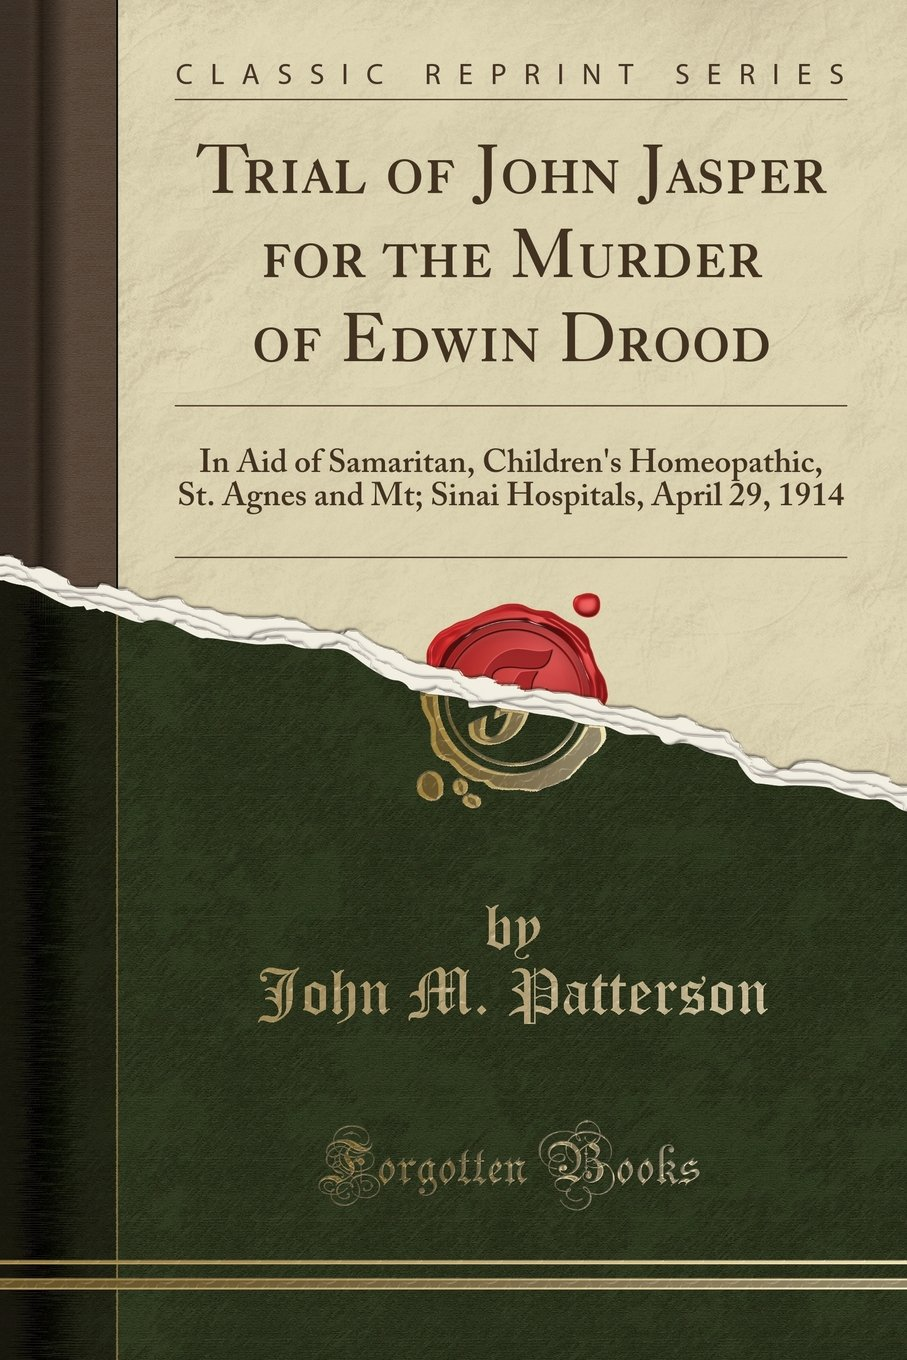 Trial of John Jasper for the Murder of Edwin Drood: In Aid of Samaritan, Children's Homeopathic, St. Agnes and Mt; Sinai Hospitals, April 29, 1914 (Classic Reprint) PDF